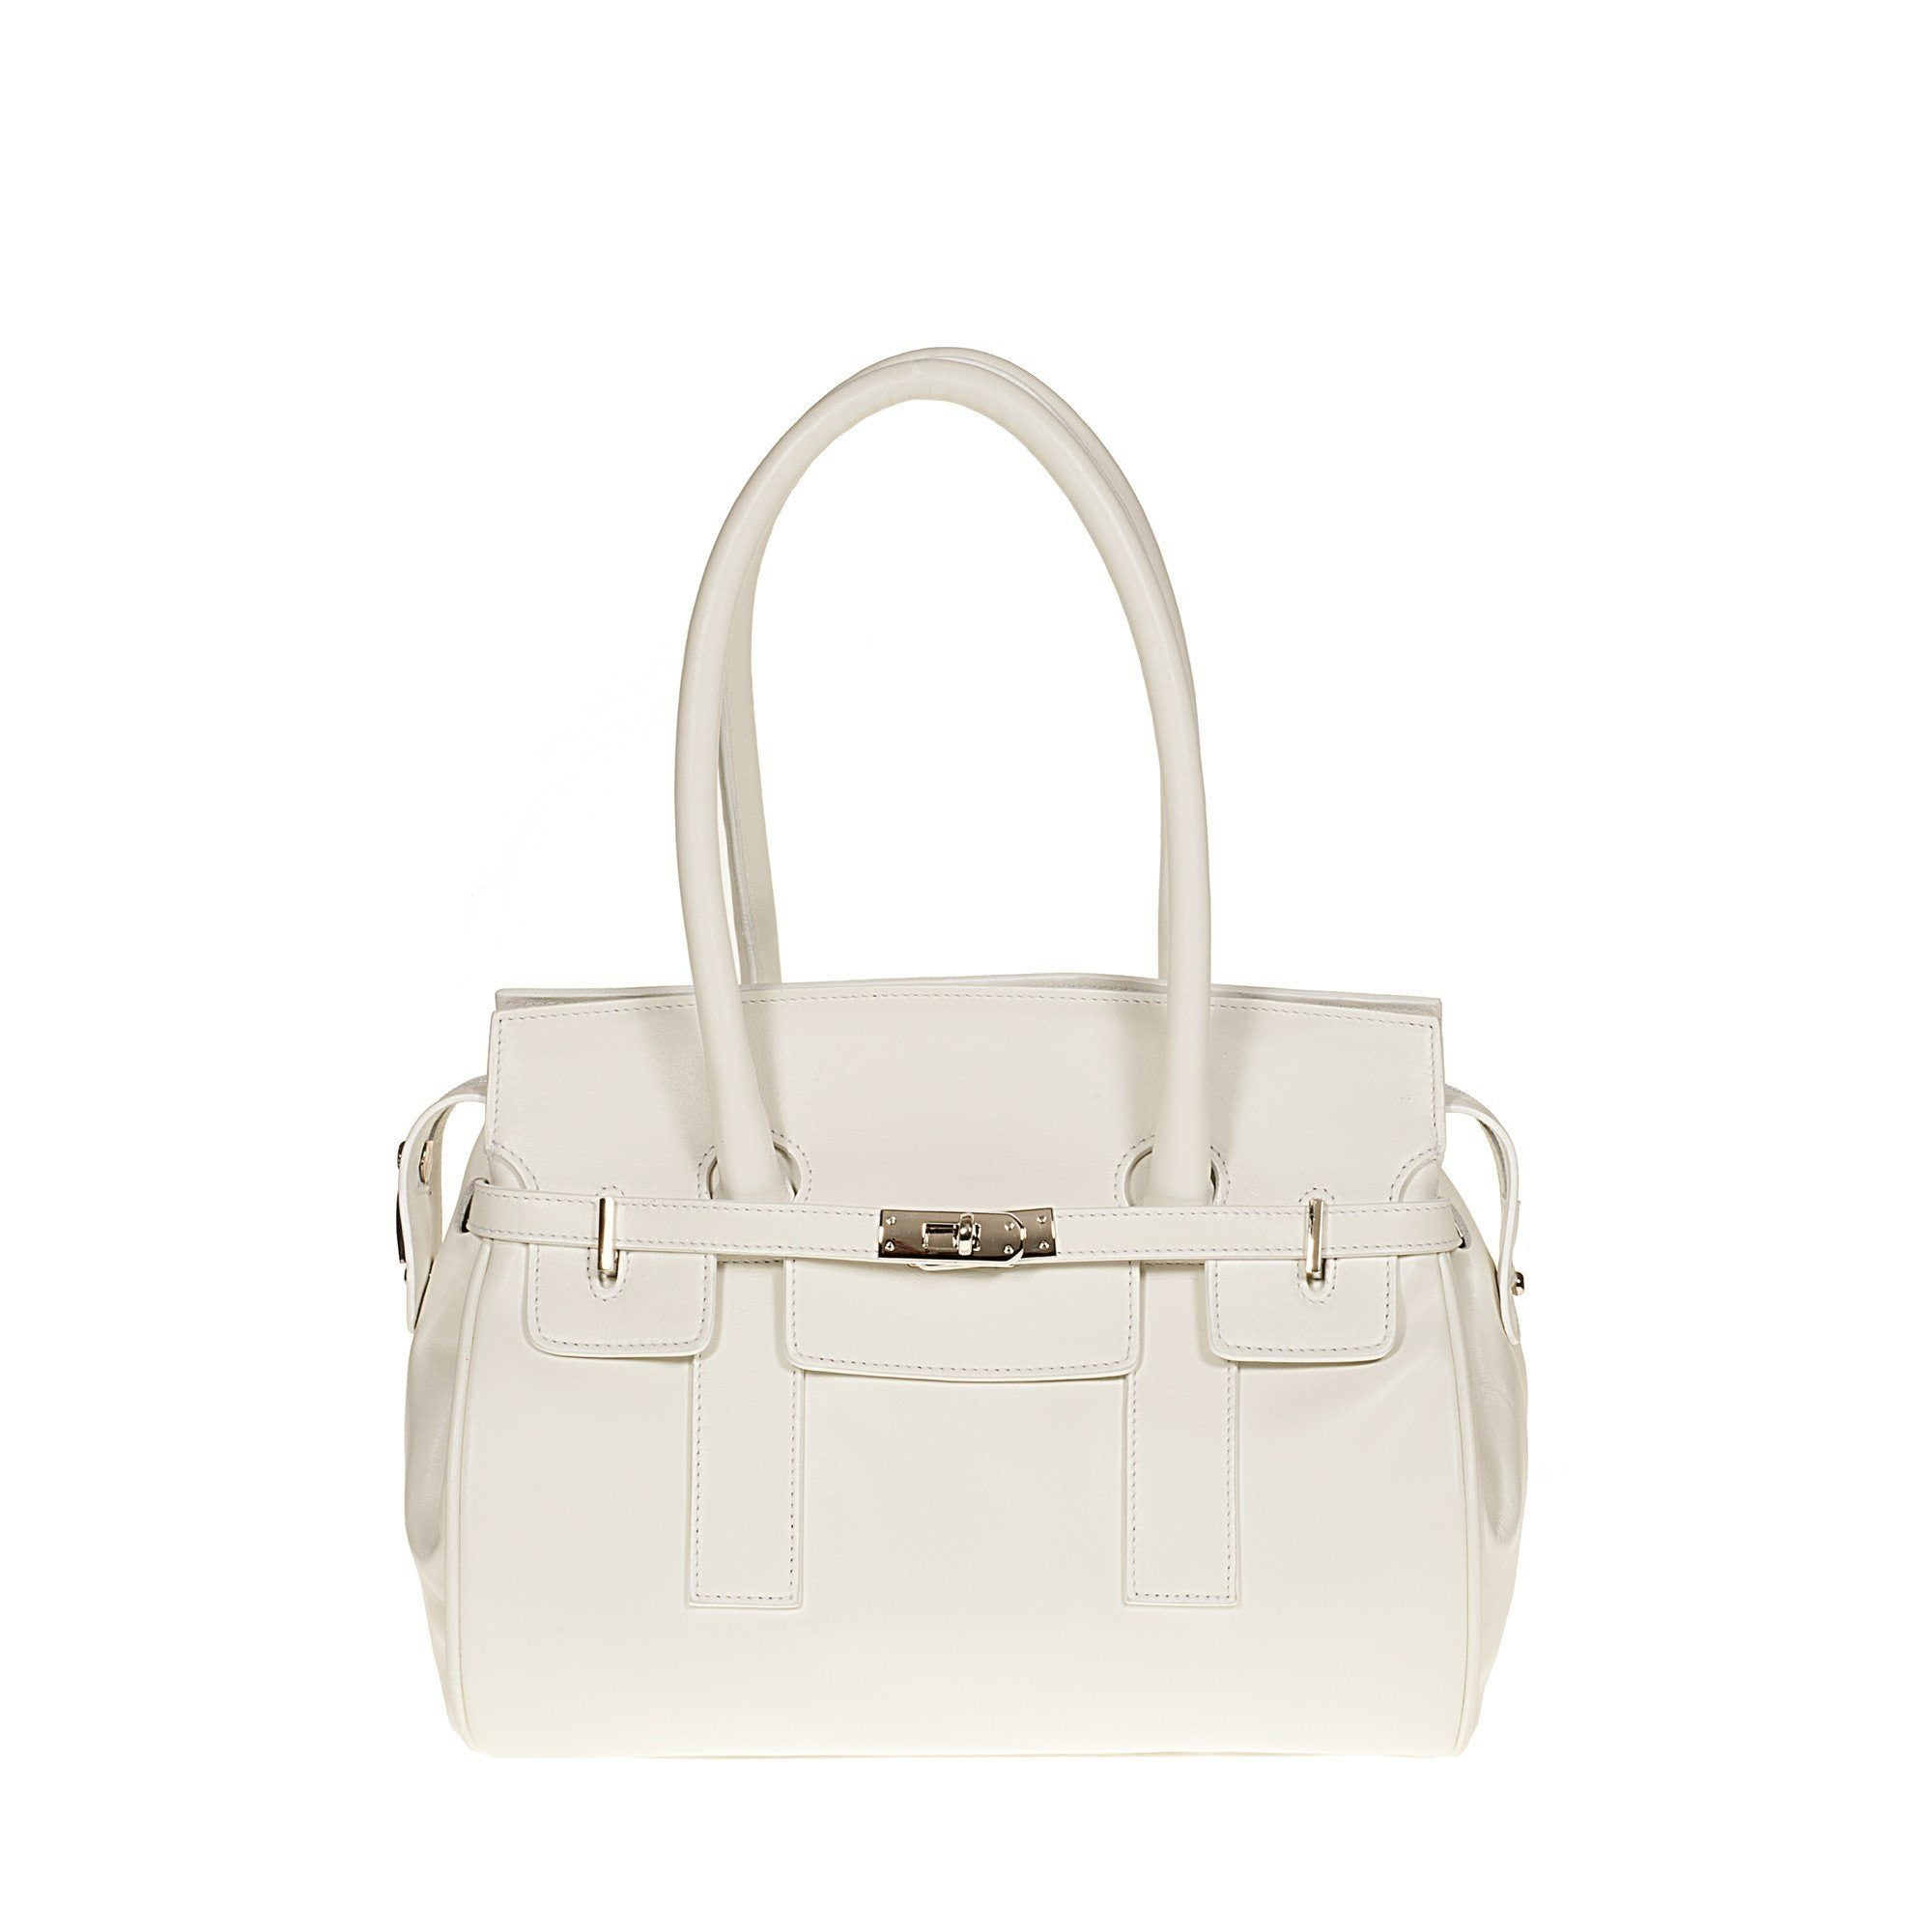 Tuscans 'Marmoraia' Women's Leather Handbag Handbag Tuscans Porcelain